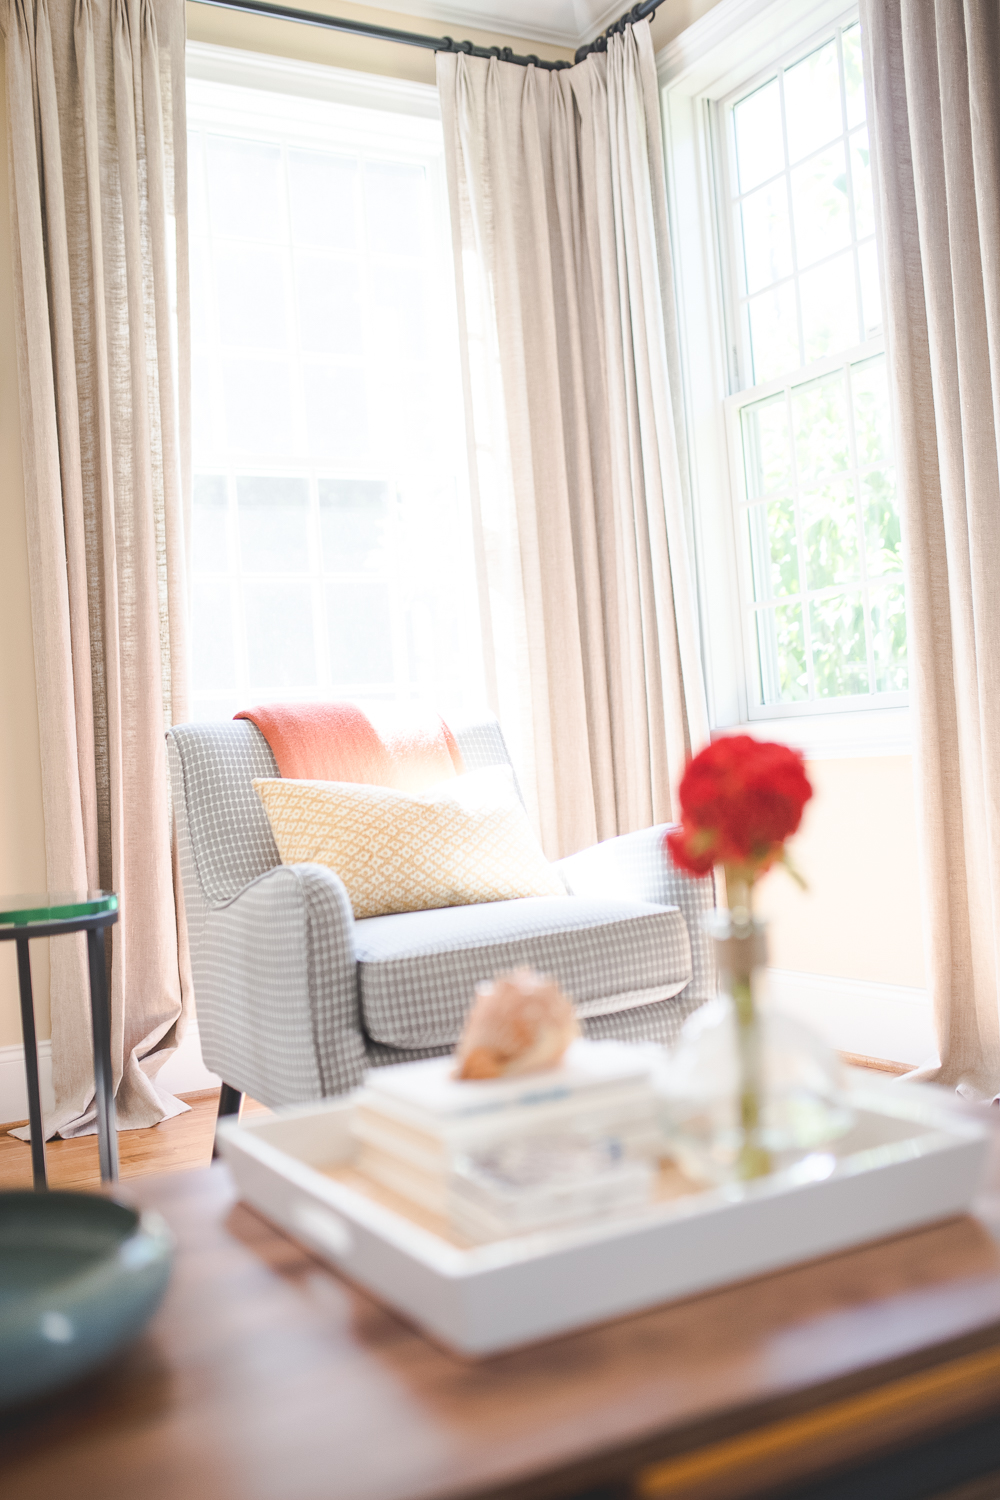 ... Interior Designers That We Recommend To Our Clients. If You Would Like  Us To Help Match You With Someone Who Would Be A Good Fit, Let Us Know, ...